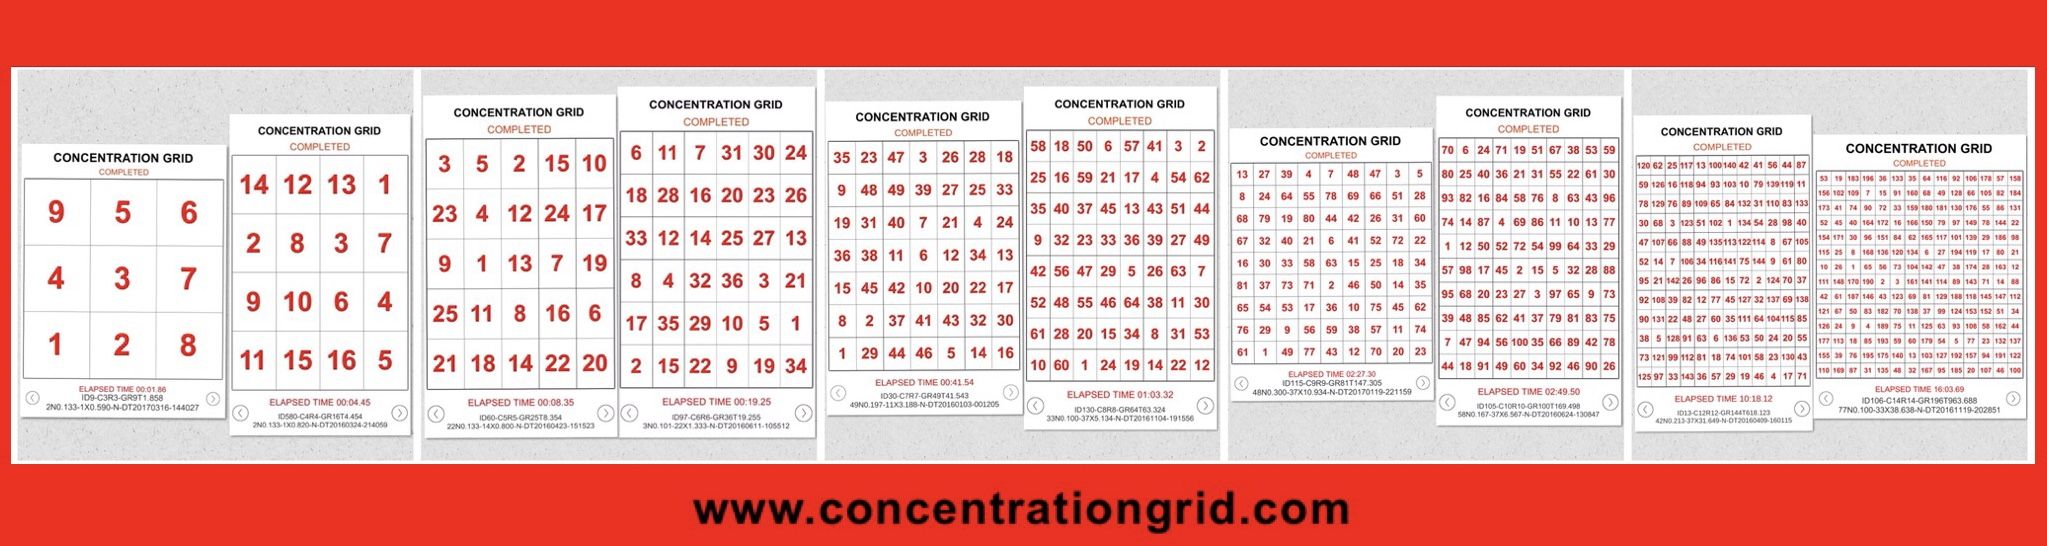 CONCENTRATION GRID web/mobile device app imple… Skill